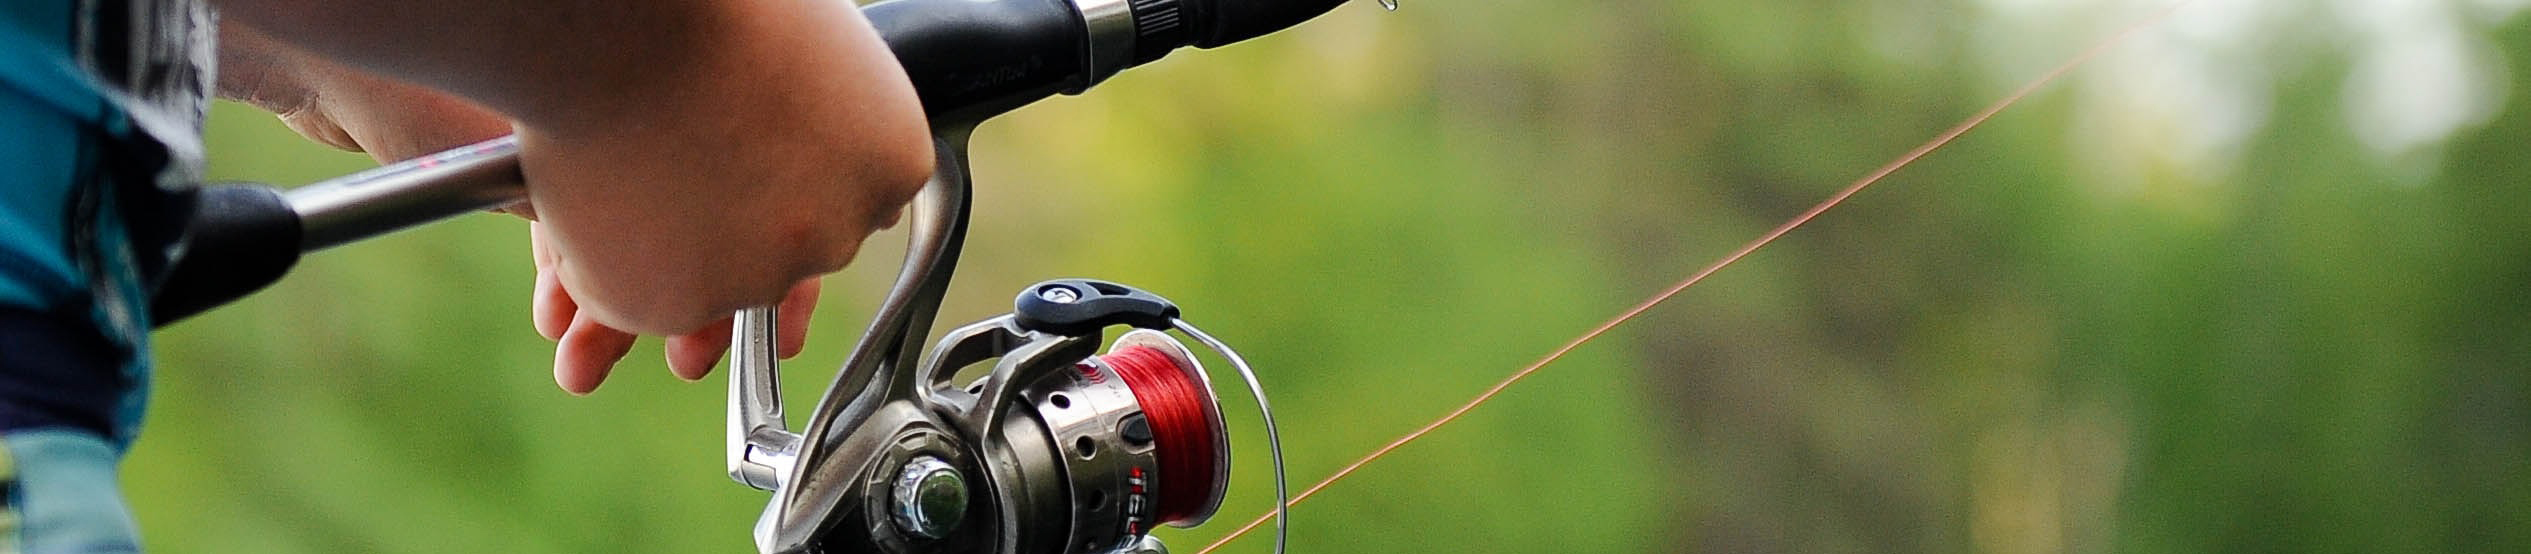 Holding a fishing rod